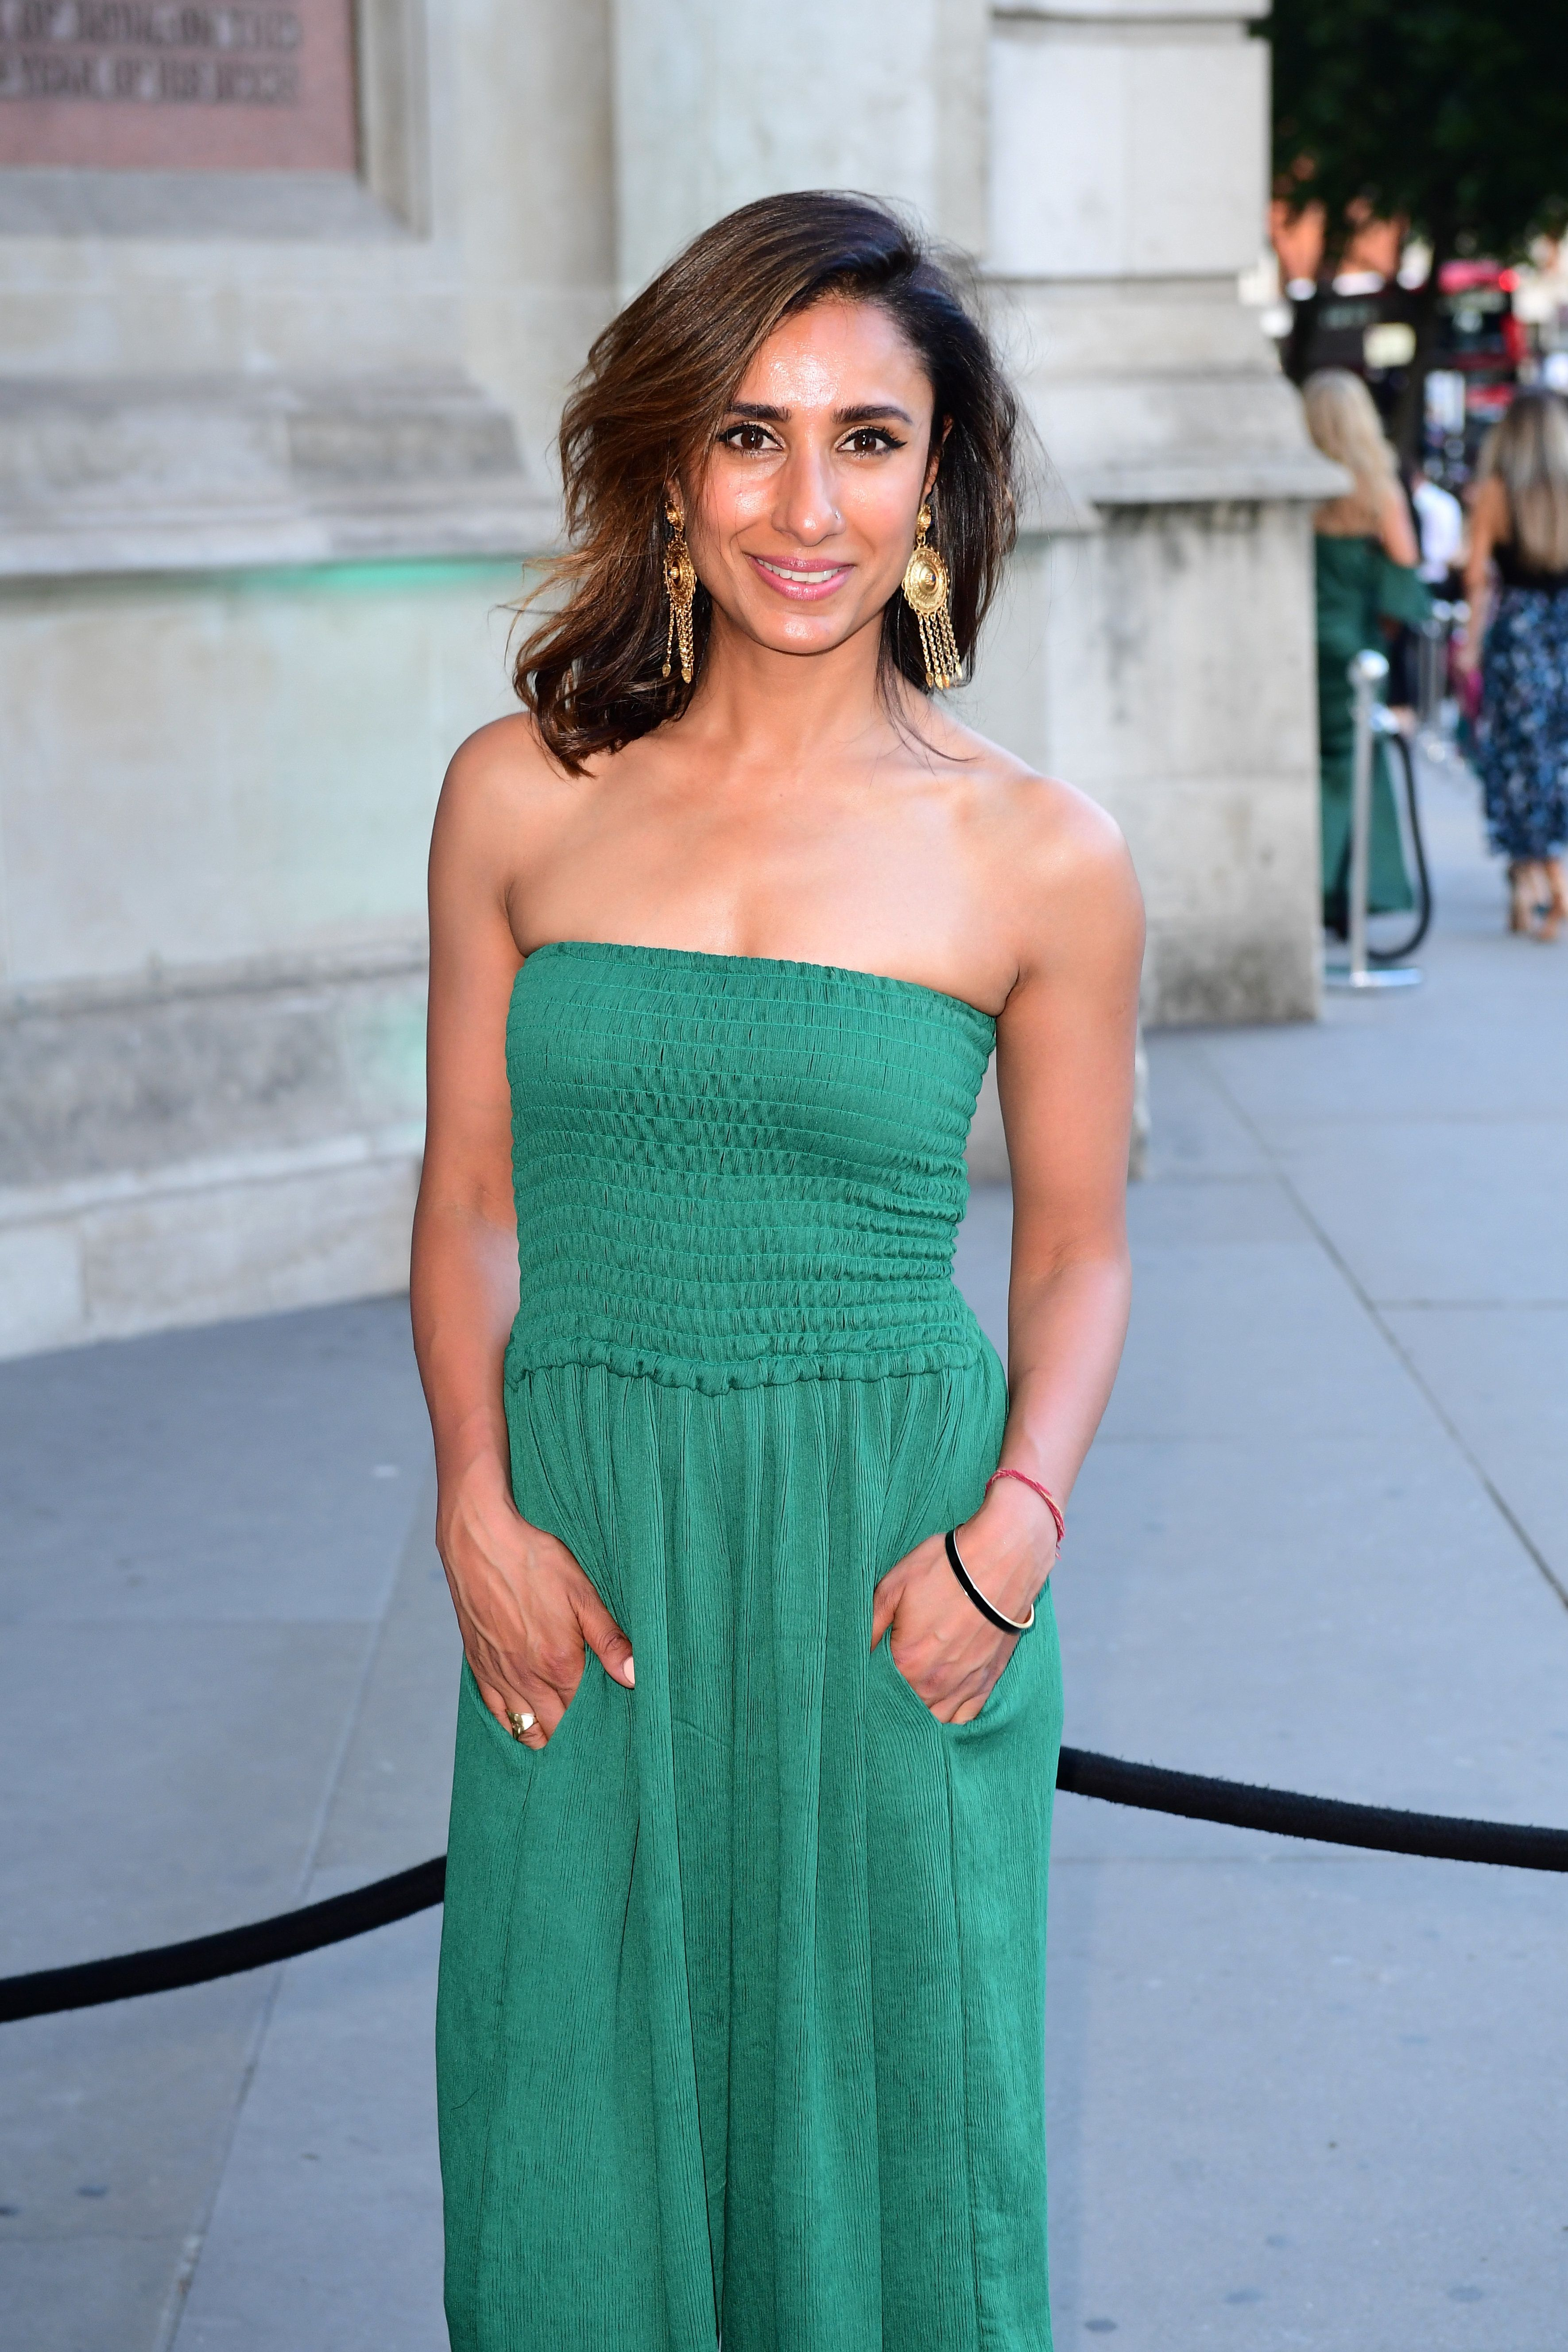 'Countryfile' Host Anita Rani Calls For BBC To Address Race Pay Gap As Equally As Gender Pay